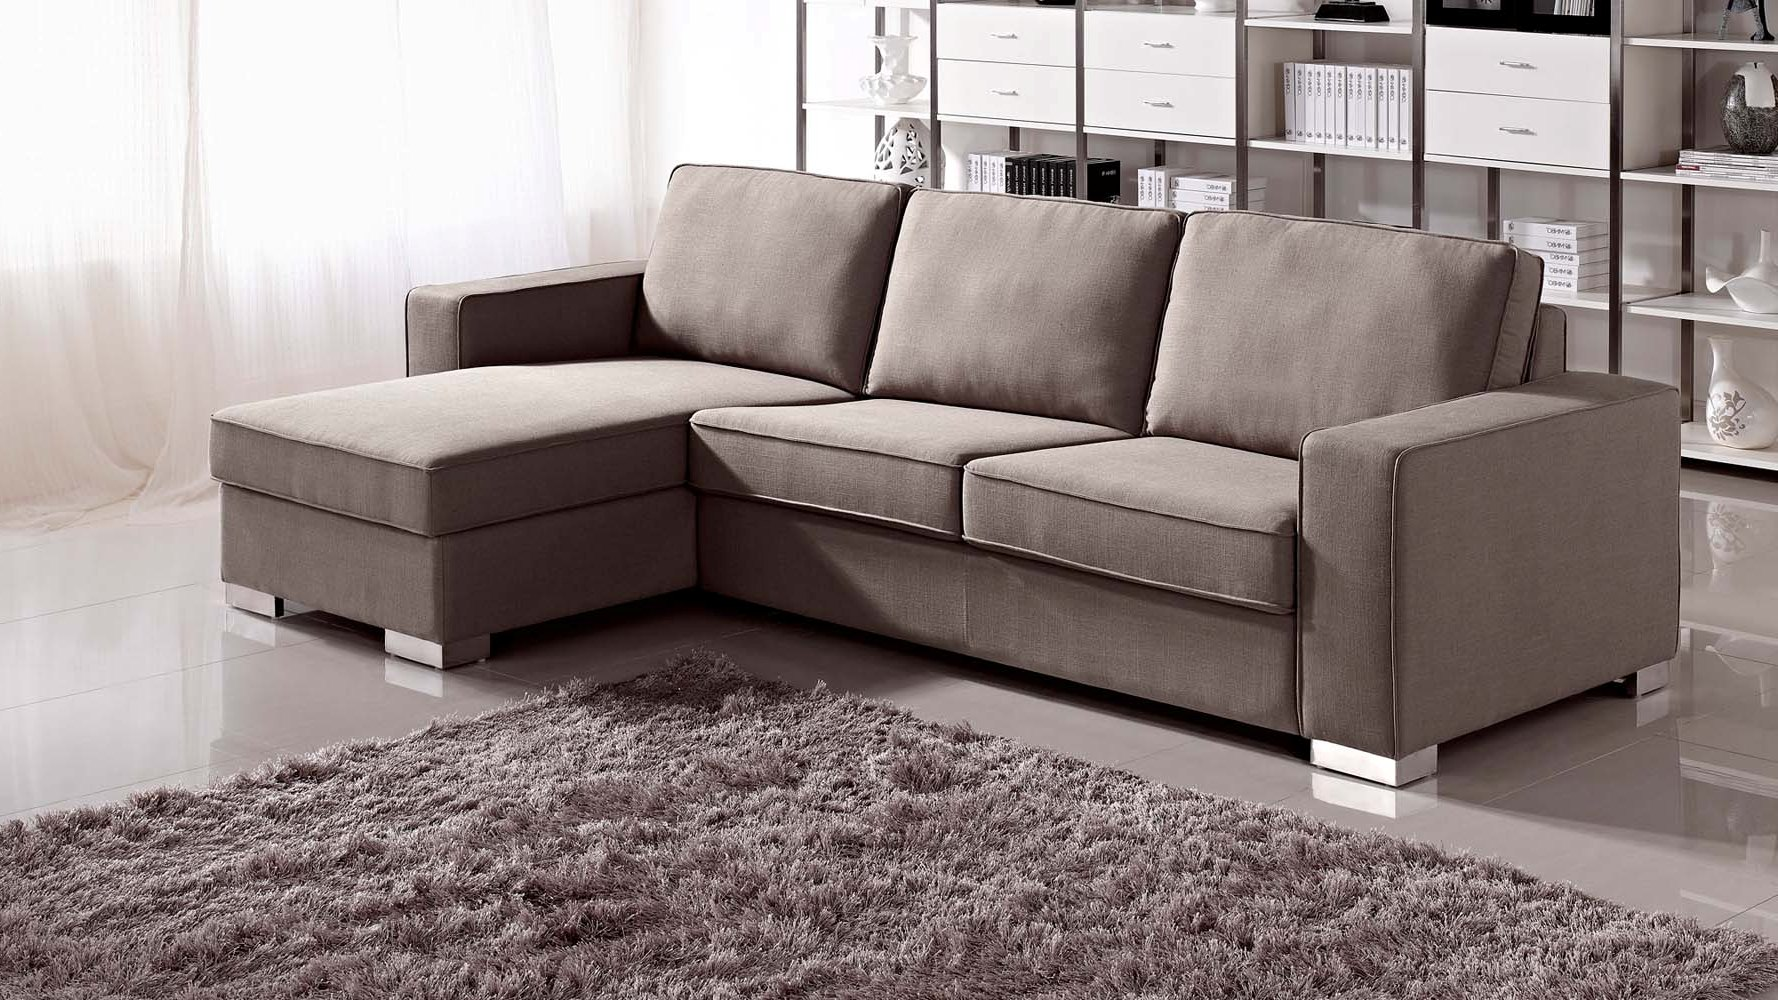 Chloe Sleeper Sectional